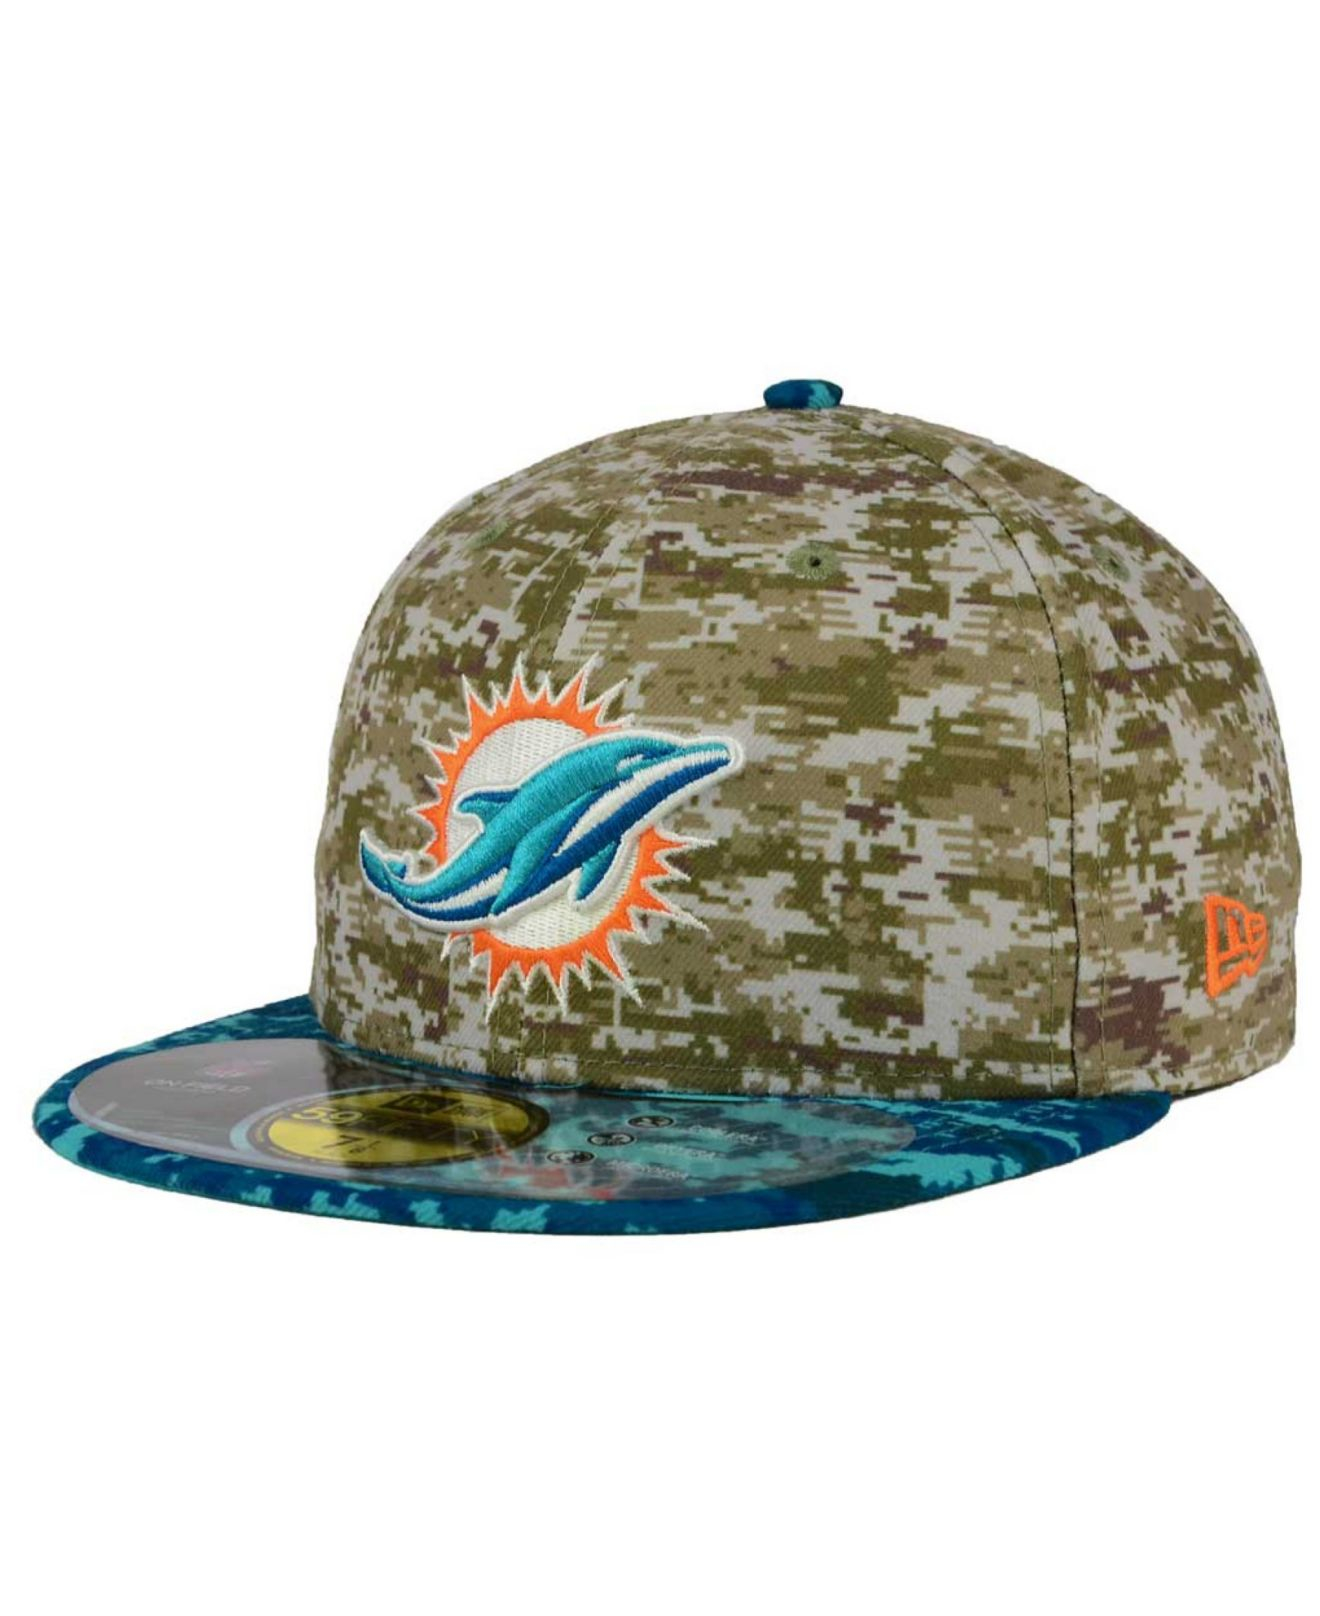 sports shoes 14a12 4f9ce Lyst - KTZ Miami Dolphins Salute To Service 59fifty Cap in Green for Men